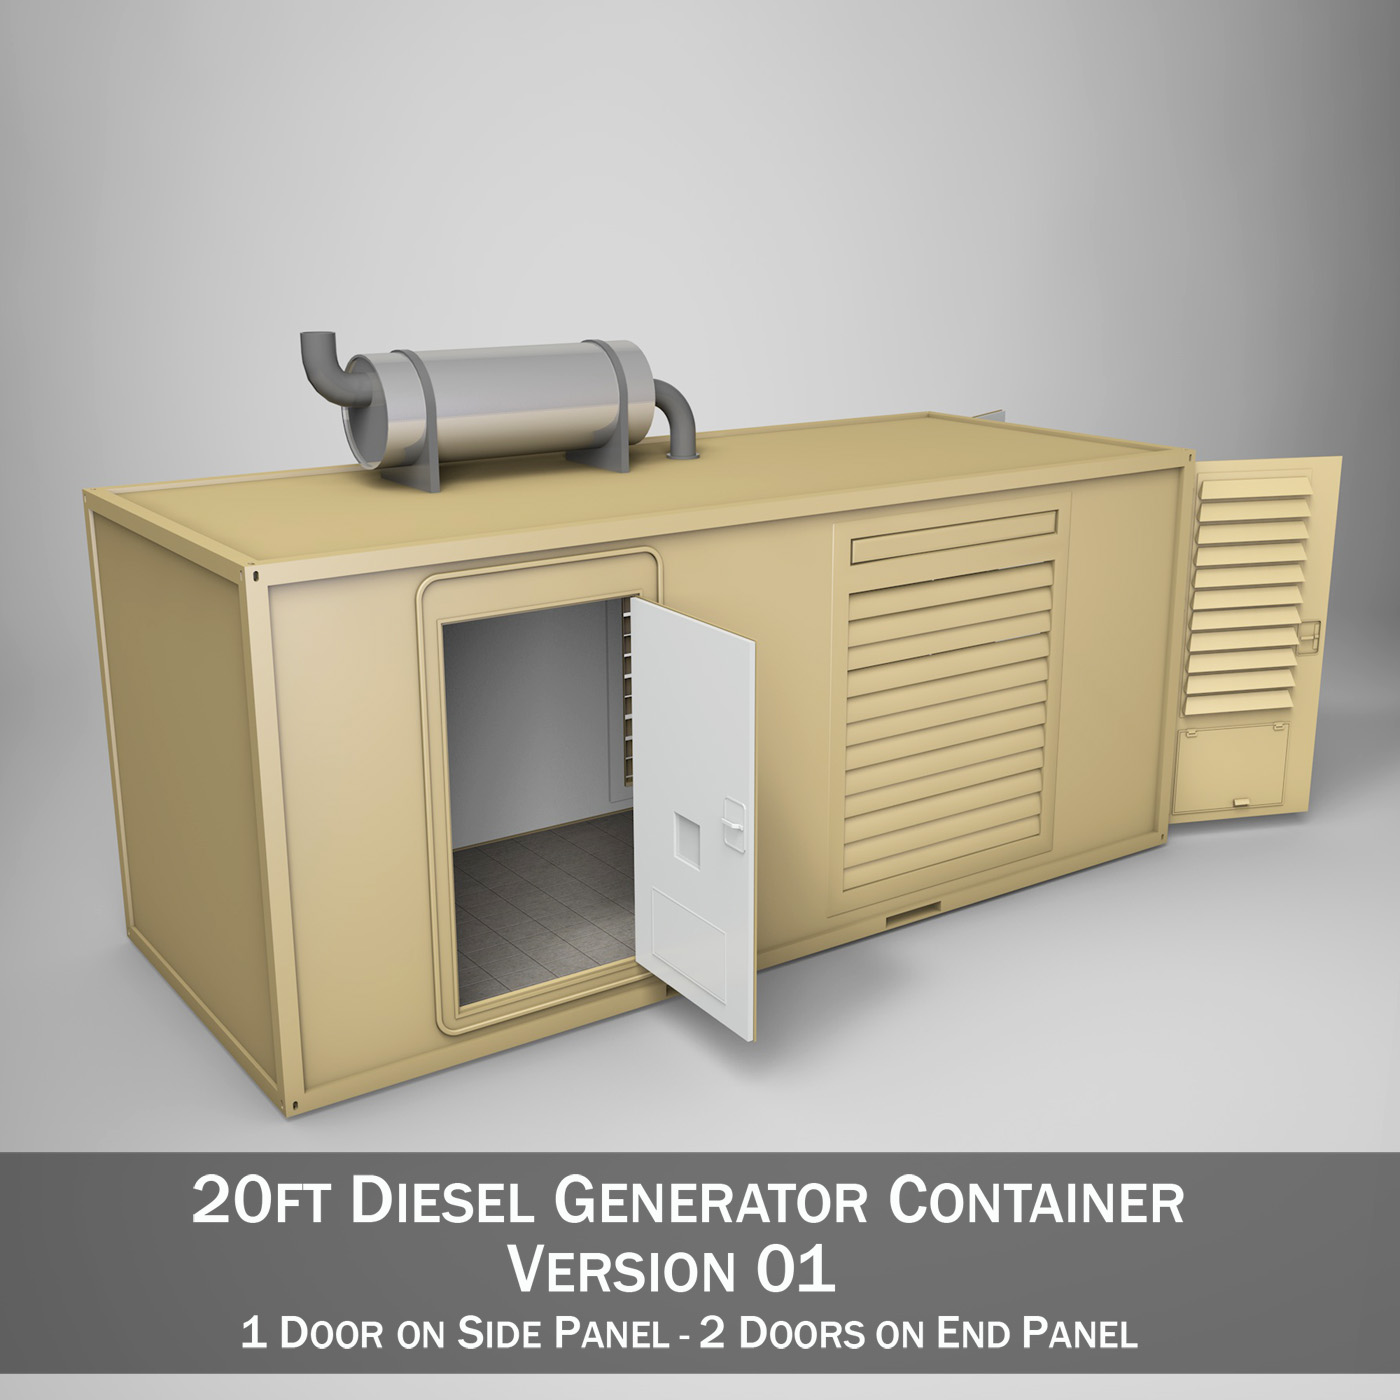 20ft gjenerator enë version 1 3d model 3ds c4d fbx lwo lw lws obj 264722